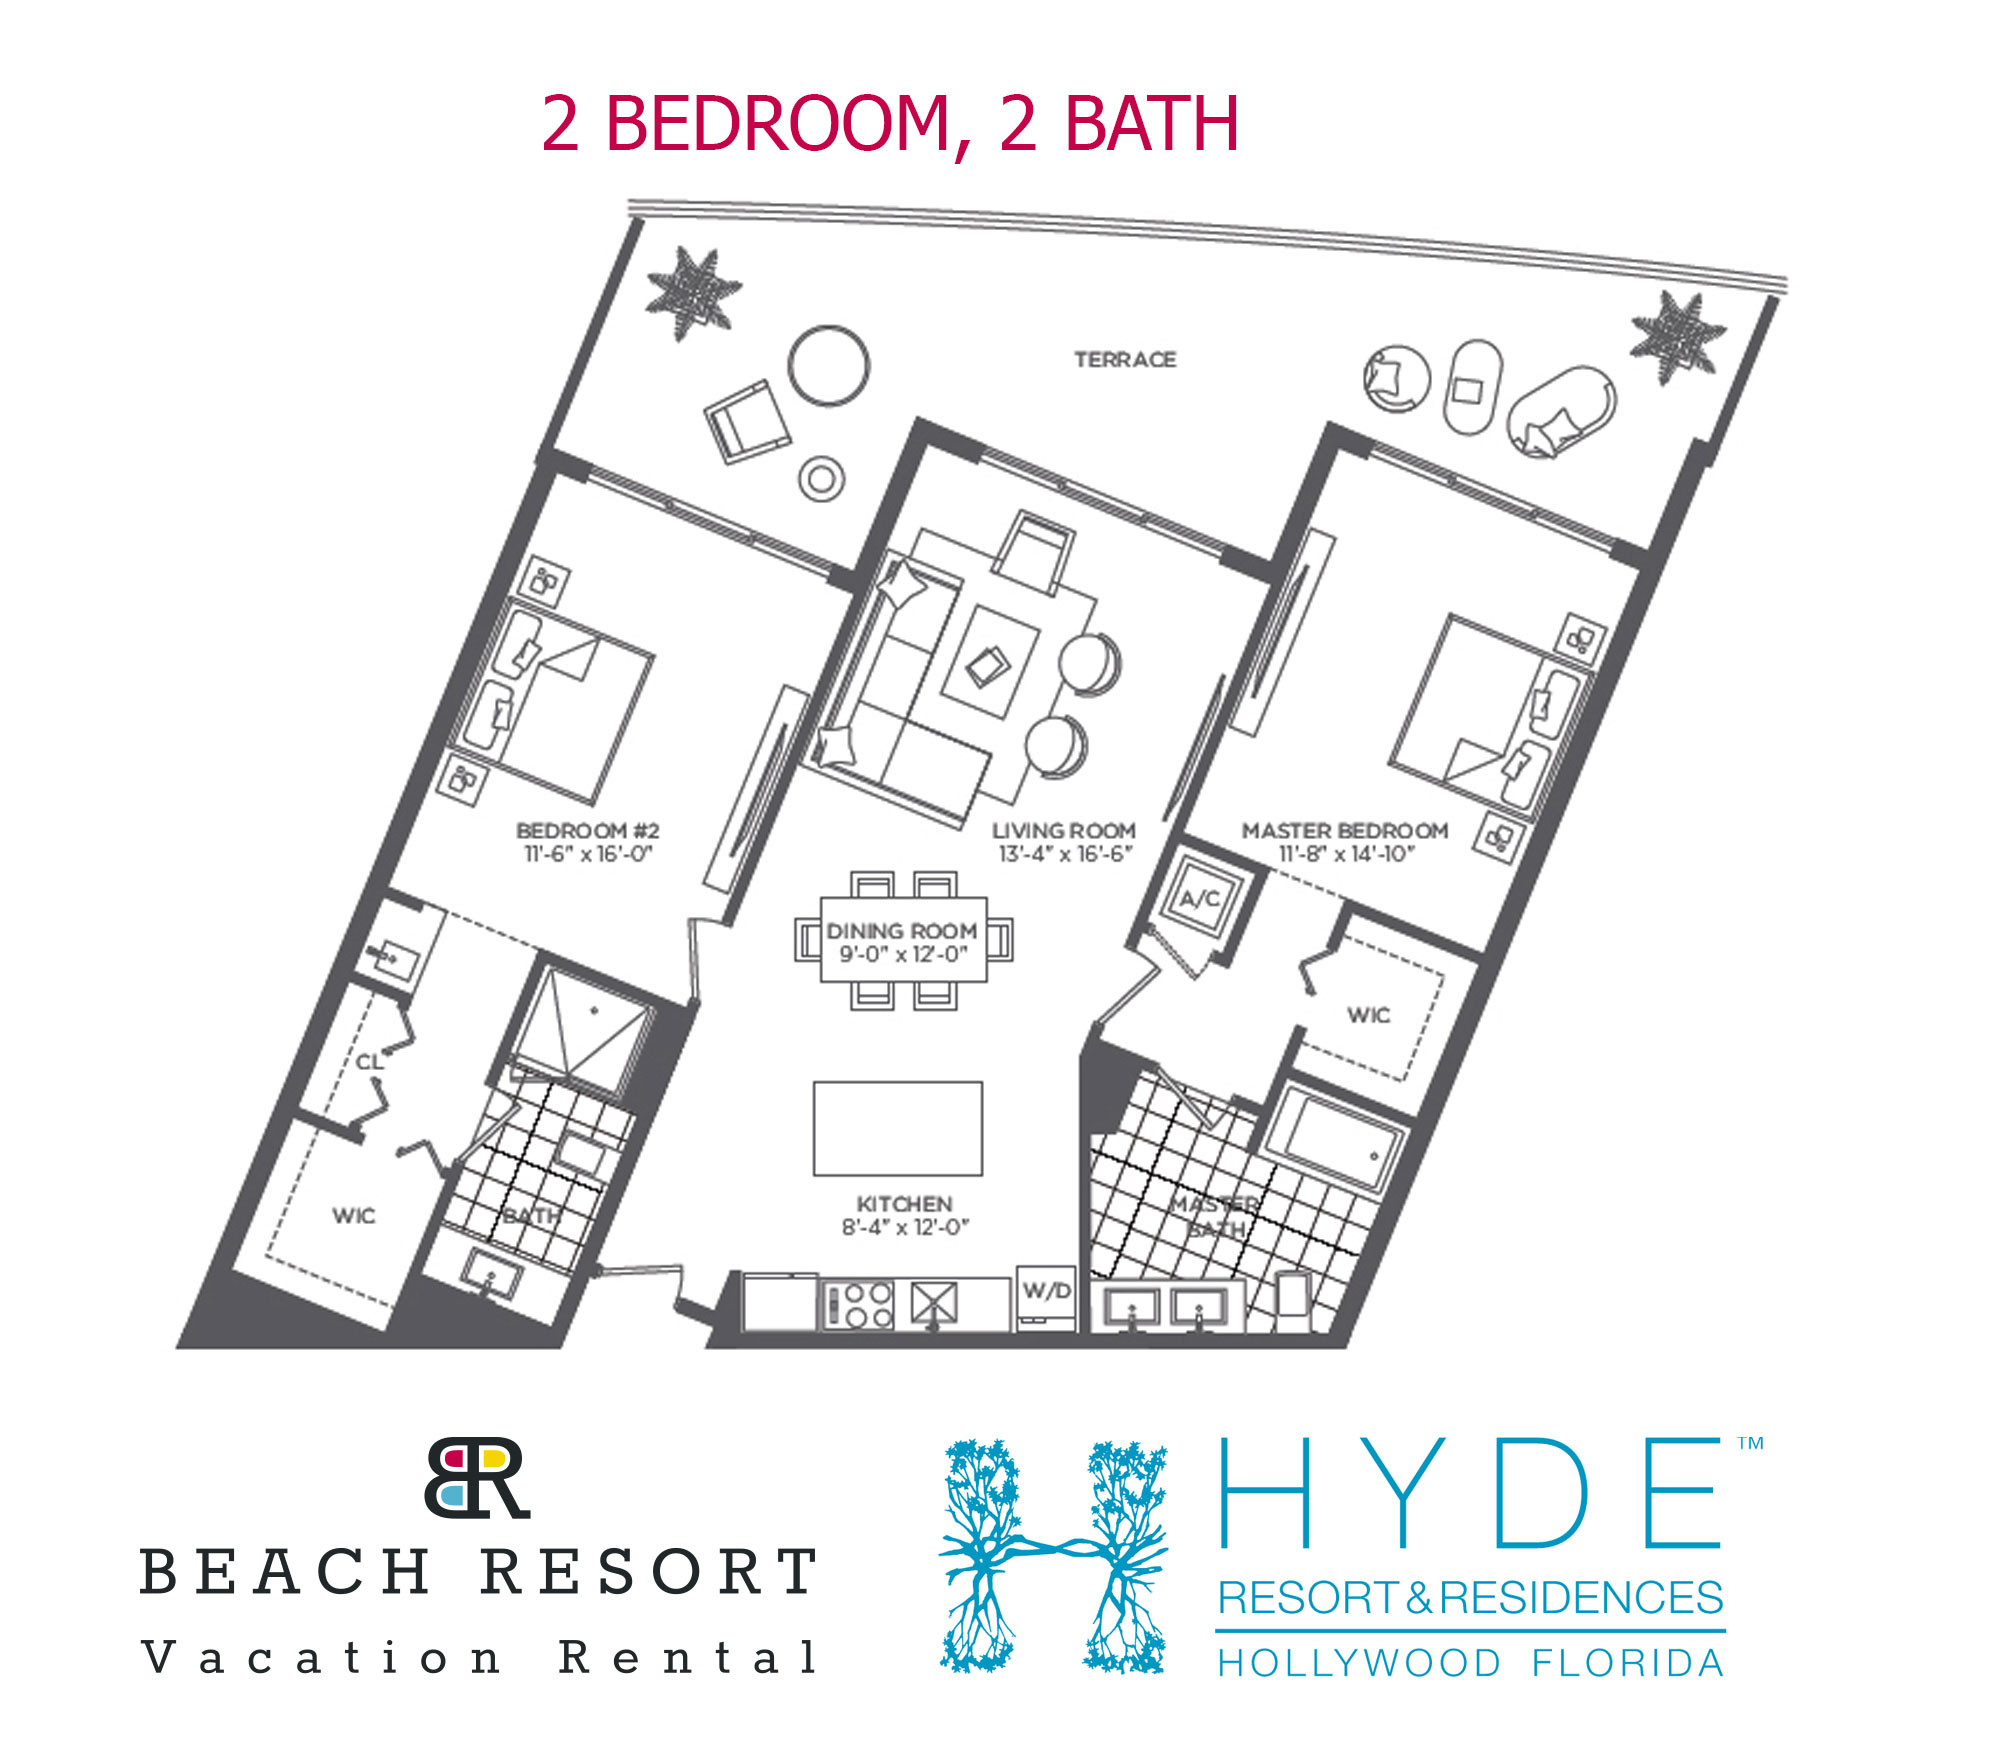 HYDE RESORT 2 BED